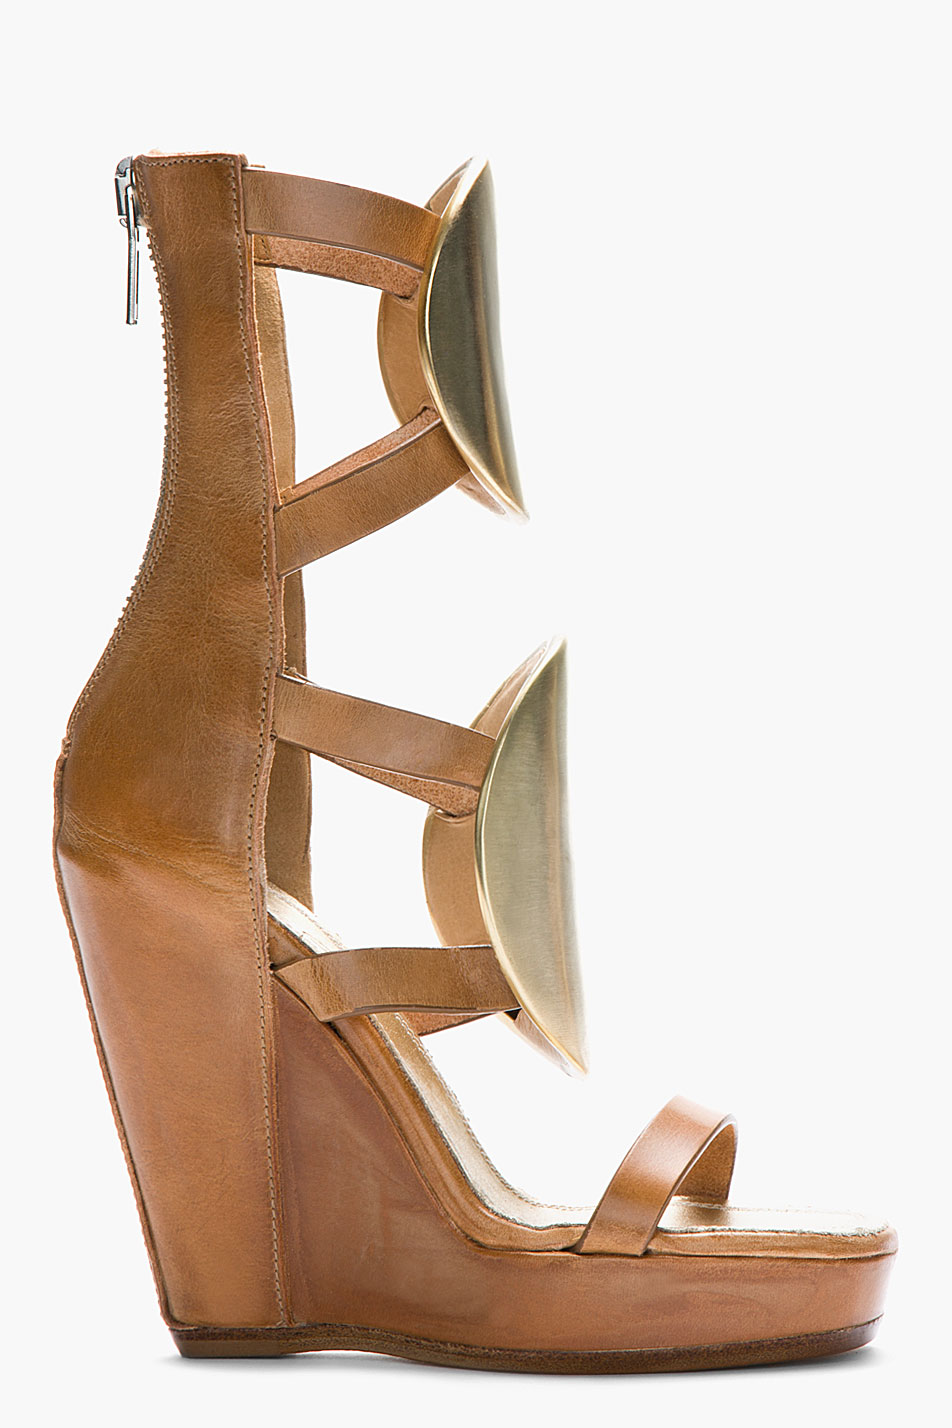 Gladiator Wedge Heel Sandals 5nPlrEiV